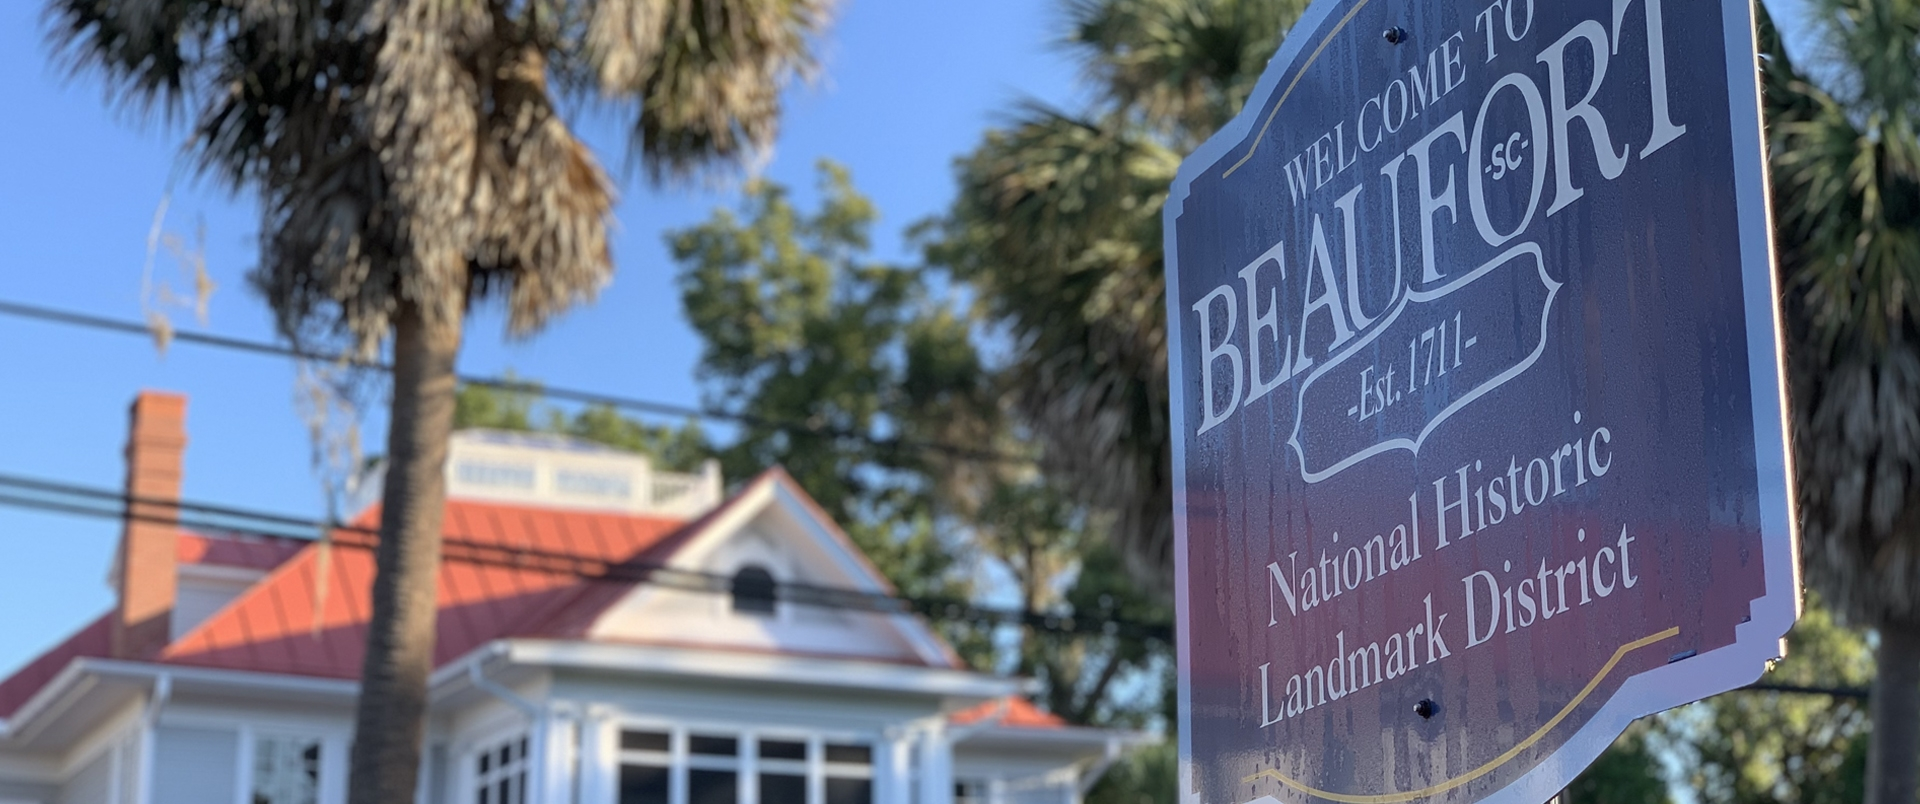 Exchange Club of Beaufort names 2019 Firefighter of the Year